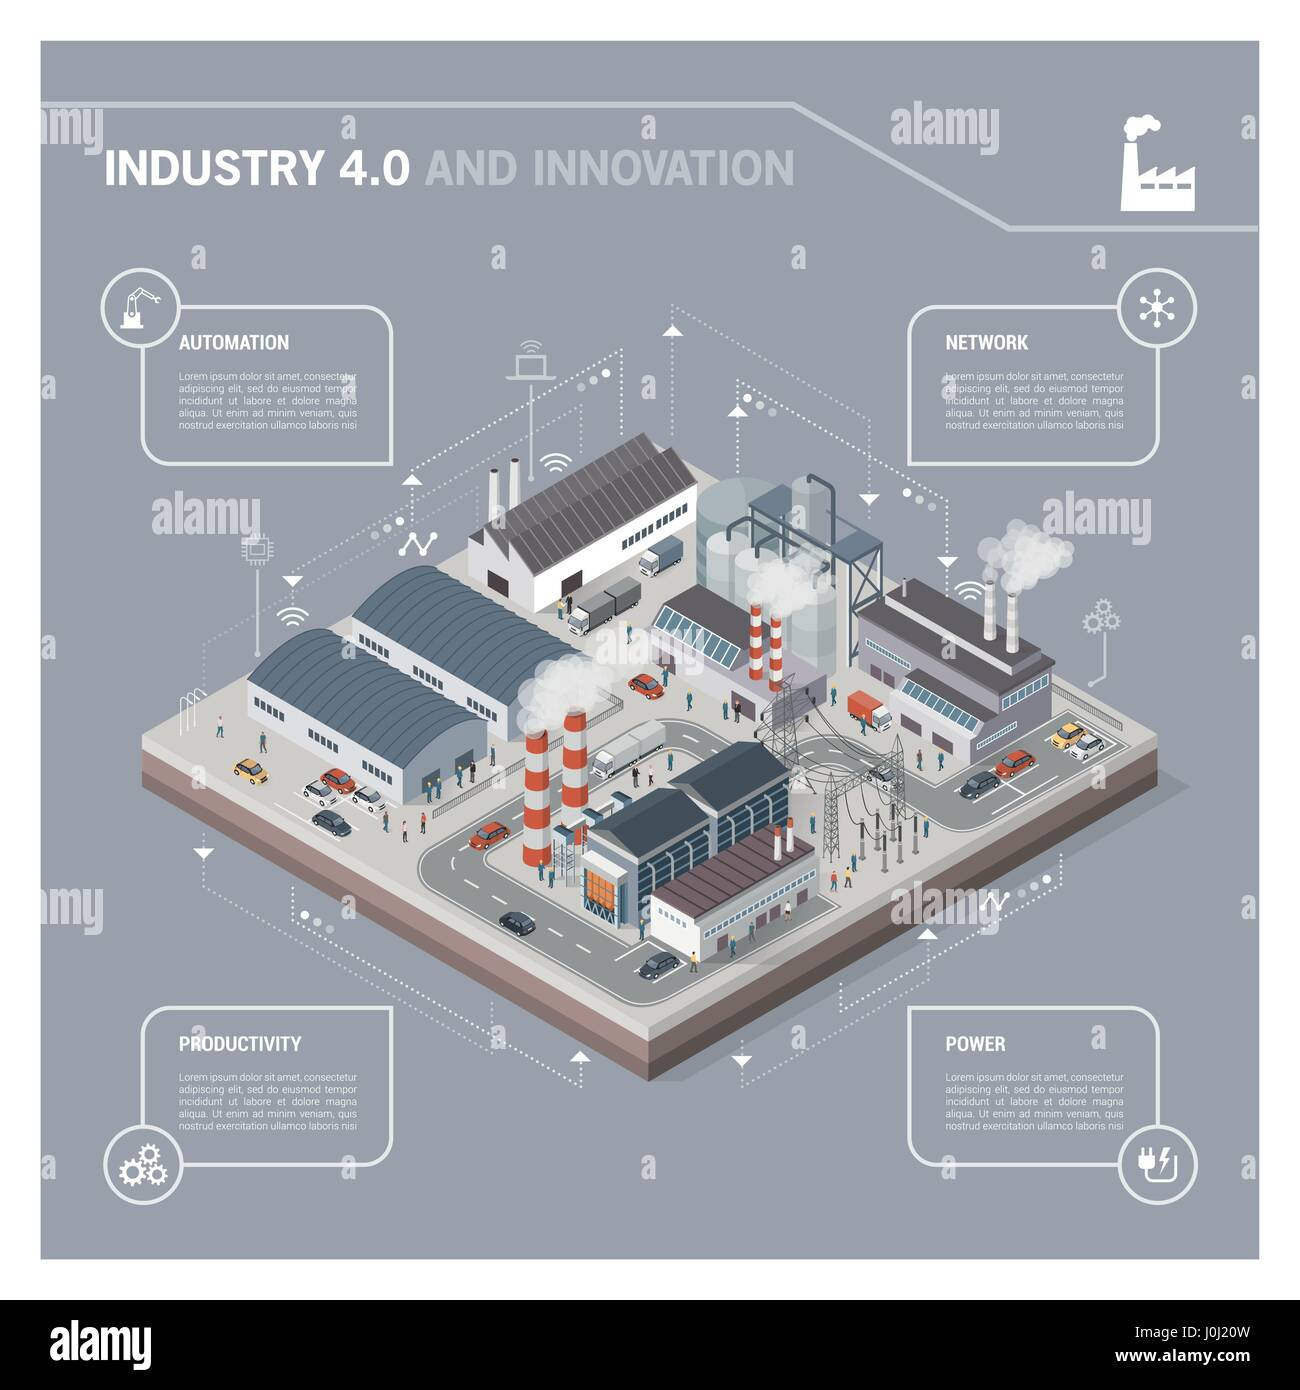 Isometric contemporary industrial park with factories, power plant, workers and transport: industry 4.0 infographic - Stock Vector